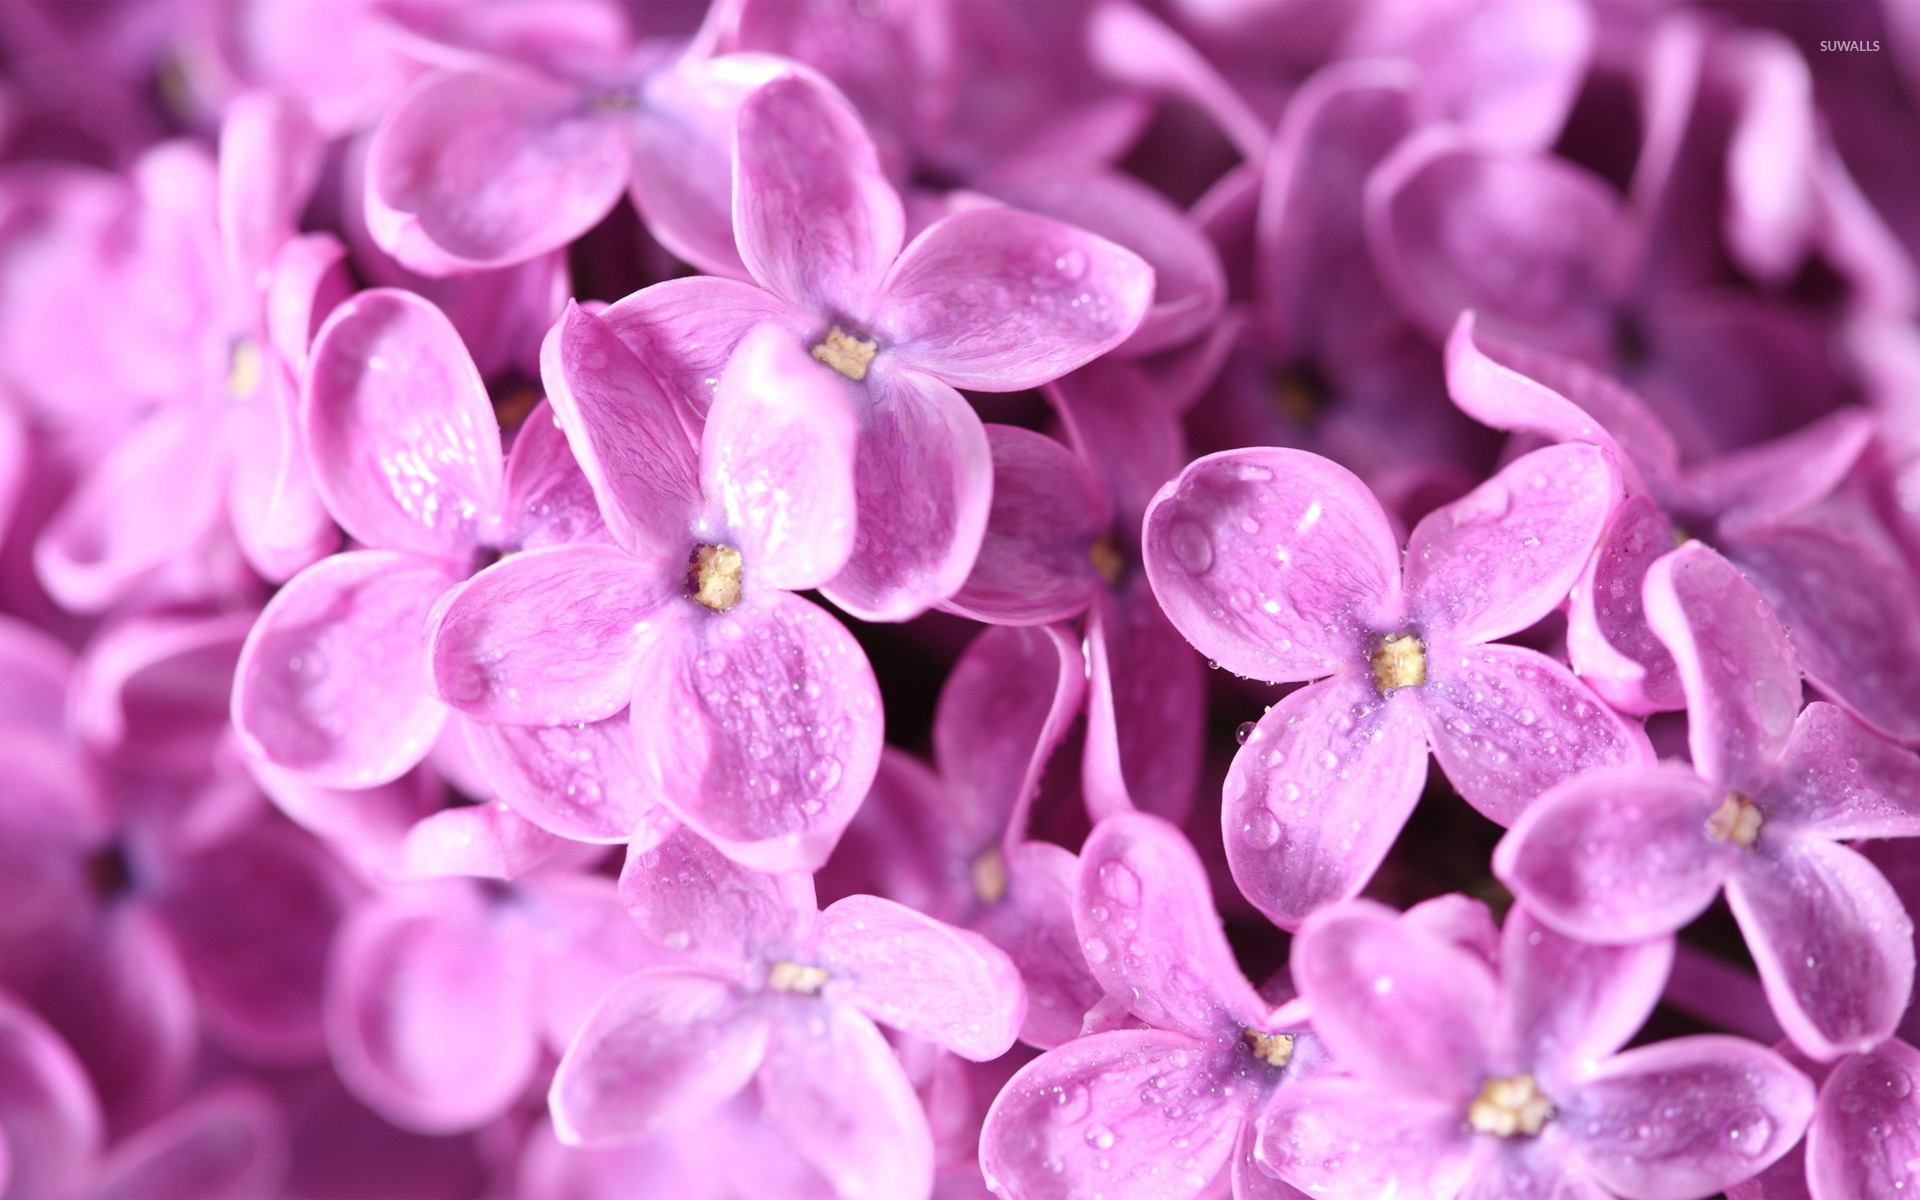 lilac flower wallpaper jpg - photo #12